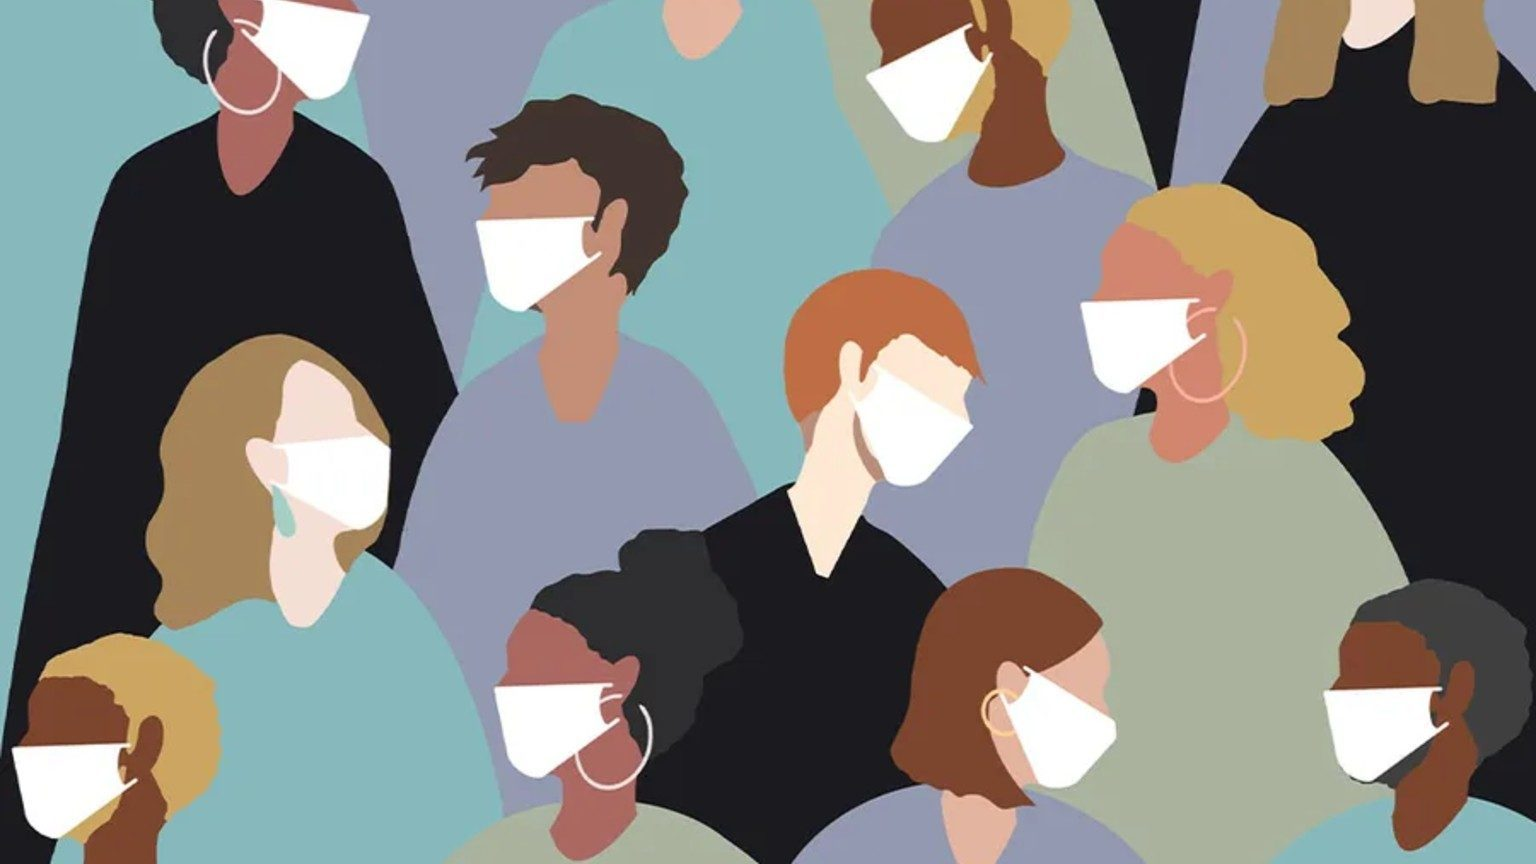 Graphic: People wearing masks to guard against coronavirus, disease